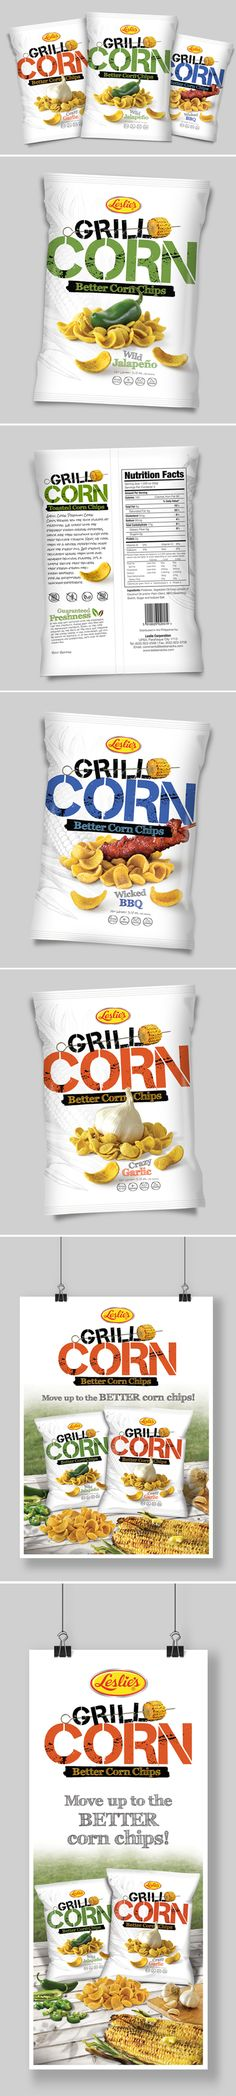 Kreativebones Design 2013 © +Corn Chips Packaging Design in 3 variants +Chips Photography +Poster, Banner and Shelf Talker design Client: Leslie's Snack Corp. Available in US and Asia